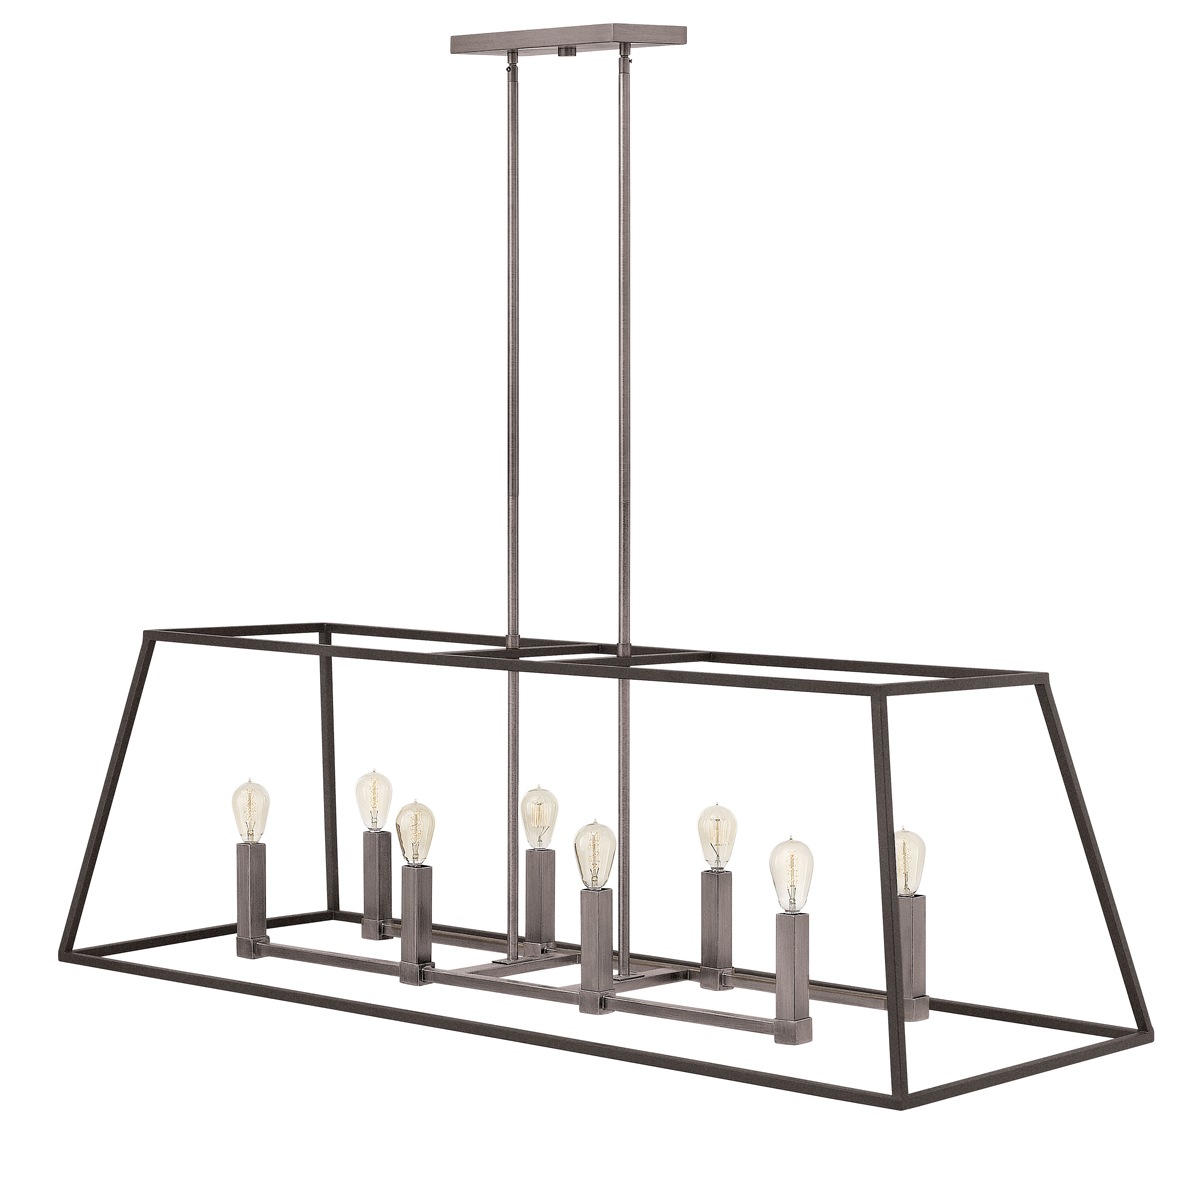 hinkley lighting 3338dz fulton 8 light rectangle foyer fixture in aged zinc